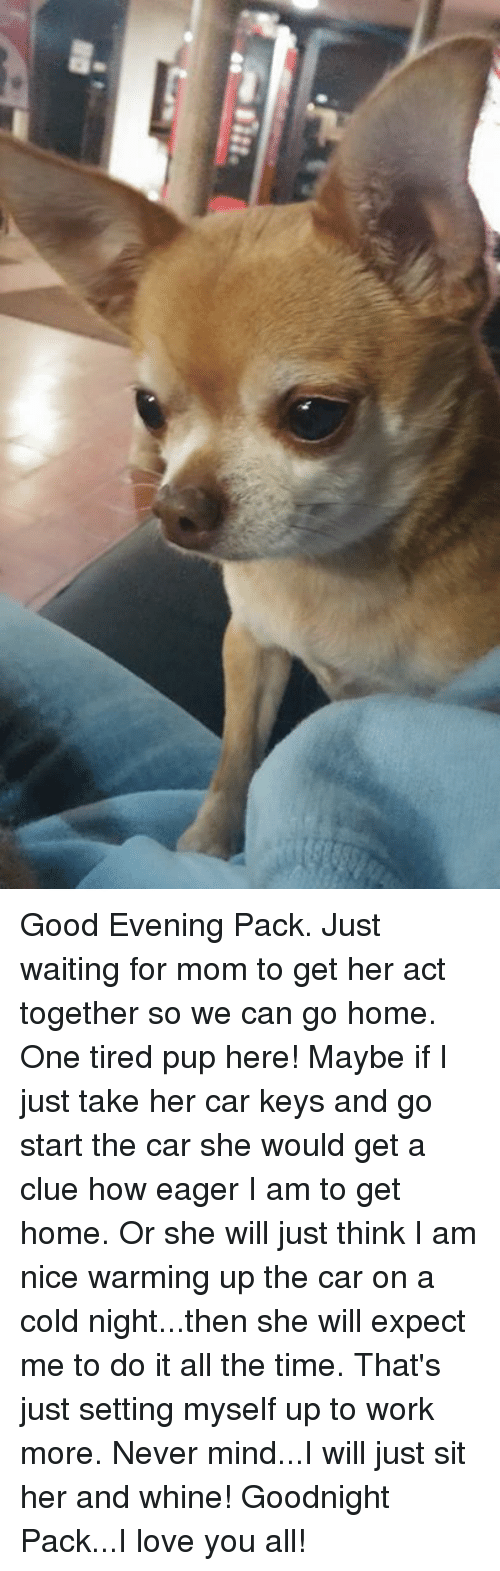 Memes, Pup, and All the Time: Eau. Good Evening Pack. Just waiting for mom to get her act together so we can go home. One tired pup here! Maybe if I just take her car keys and go start the car she would get a clue how eager I am to get home. Or she will just think I am nice warming up the car on a cold night...then she will expect me to do it all the time. That's just setting myself up to work more. Never mind...I will just sit her and whine!  Goodnight Pack...I love you all!